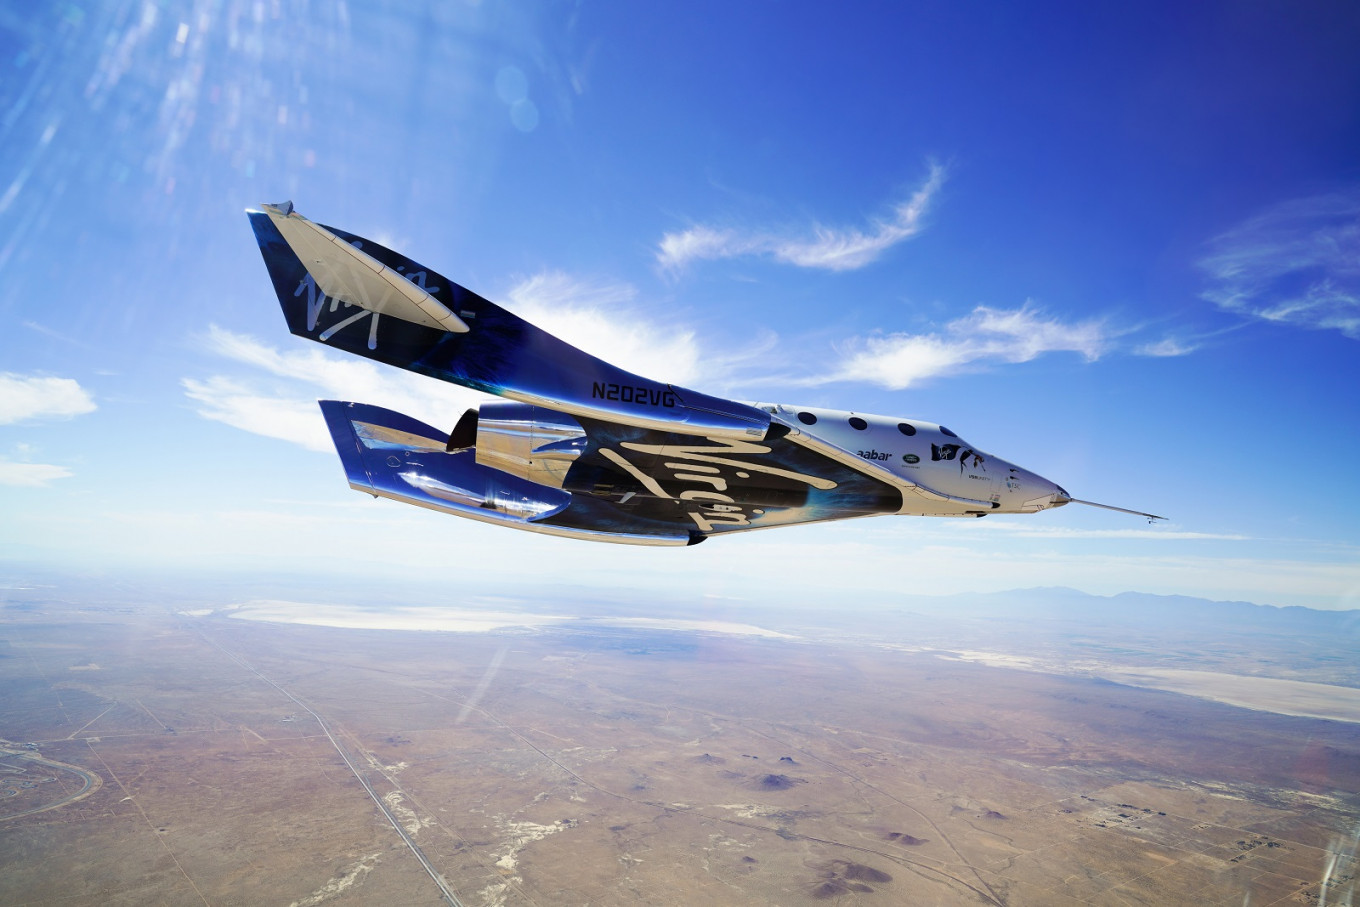 Richard Branson expects to fly passengers into space by 2020